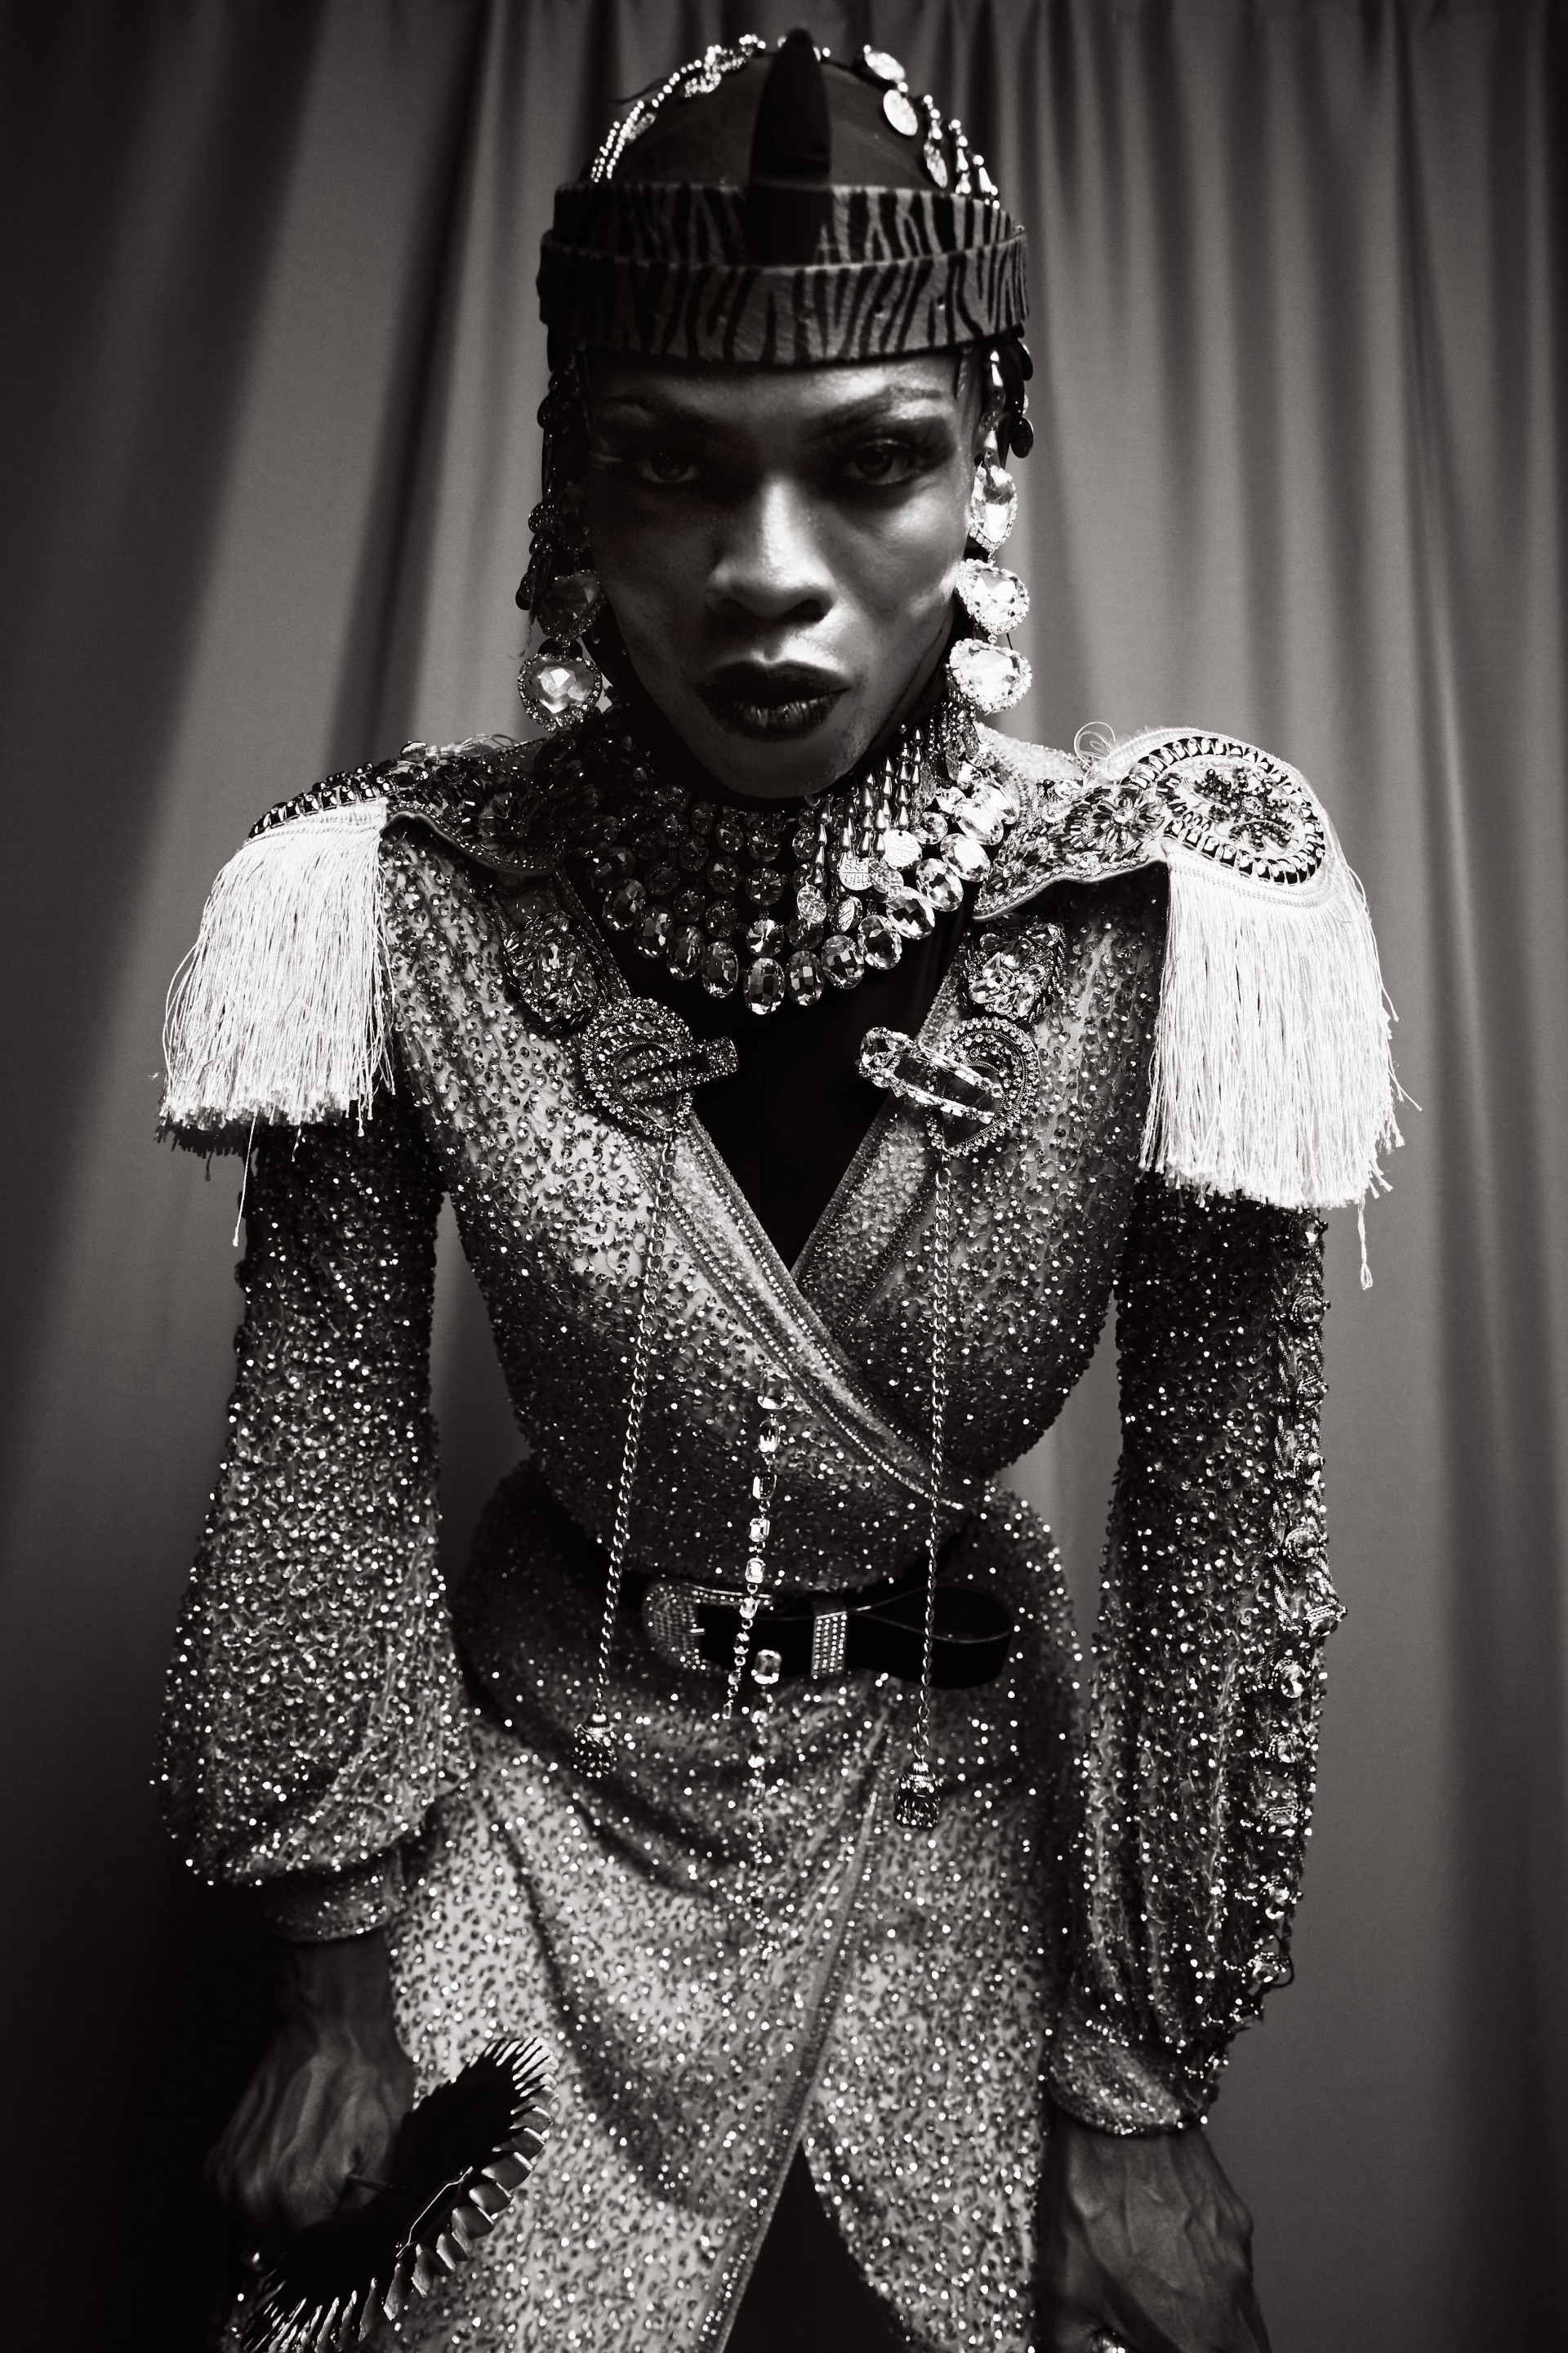 CAROLIN WINDEL African Ball III by Charly Ebony and Vini Revlon, Paris